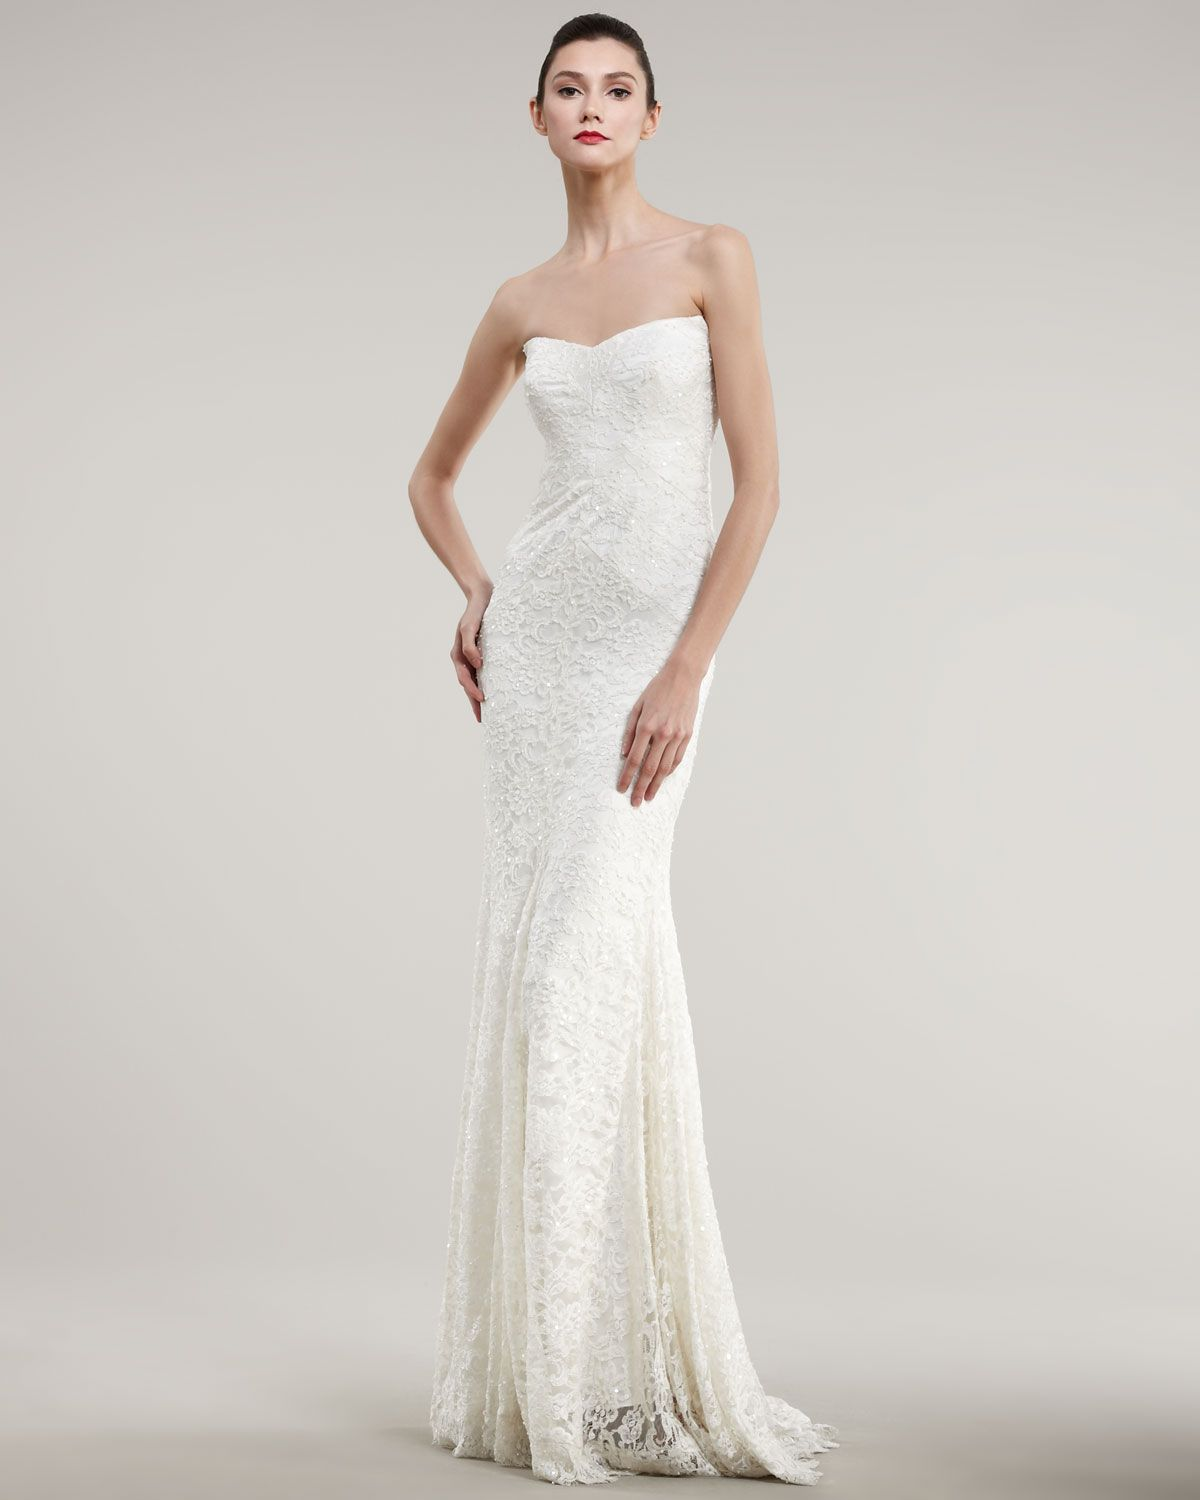 Neiman marcus dresses for weddings  Nicole Miller Strapless Lace Bias Gown  Neiman Marcus  Wedded